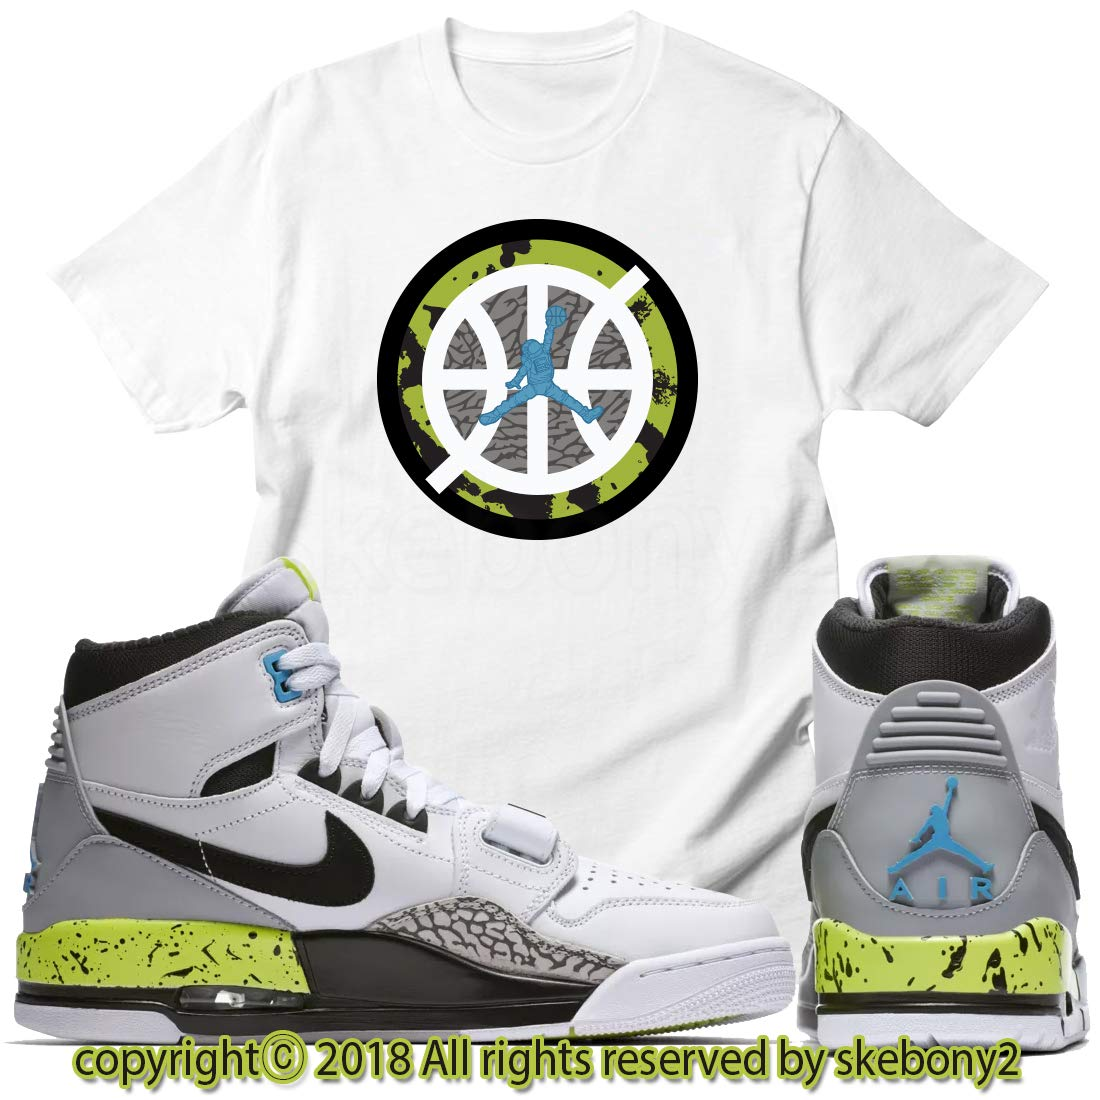 5b3aafea6a7cd Custom T Shirt Matching AIR Jordan Legacy 312 White/Volt JDL 1-2-1 ...